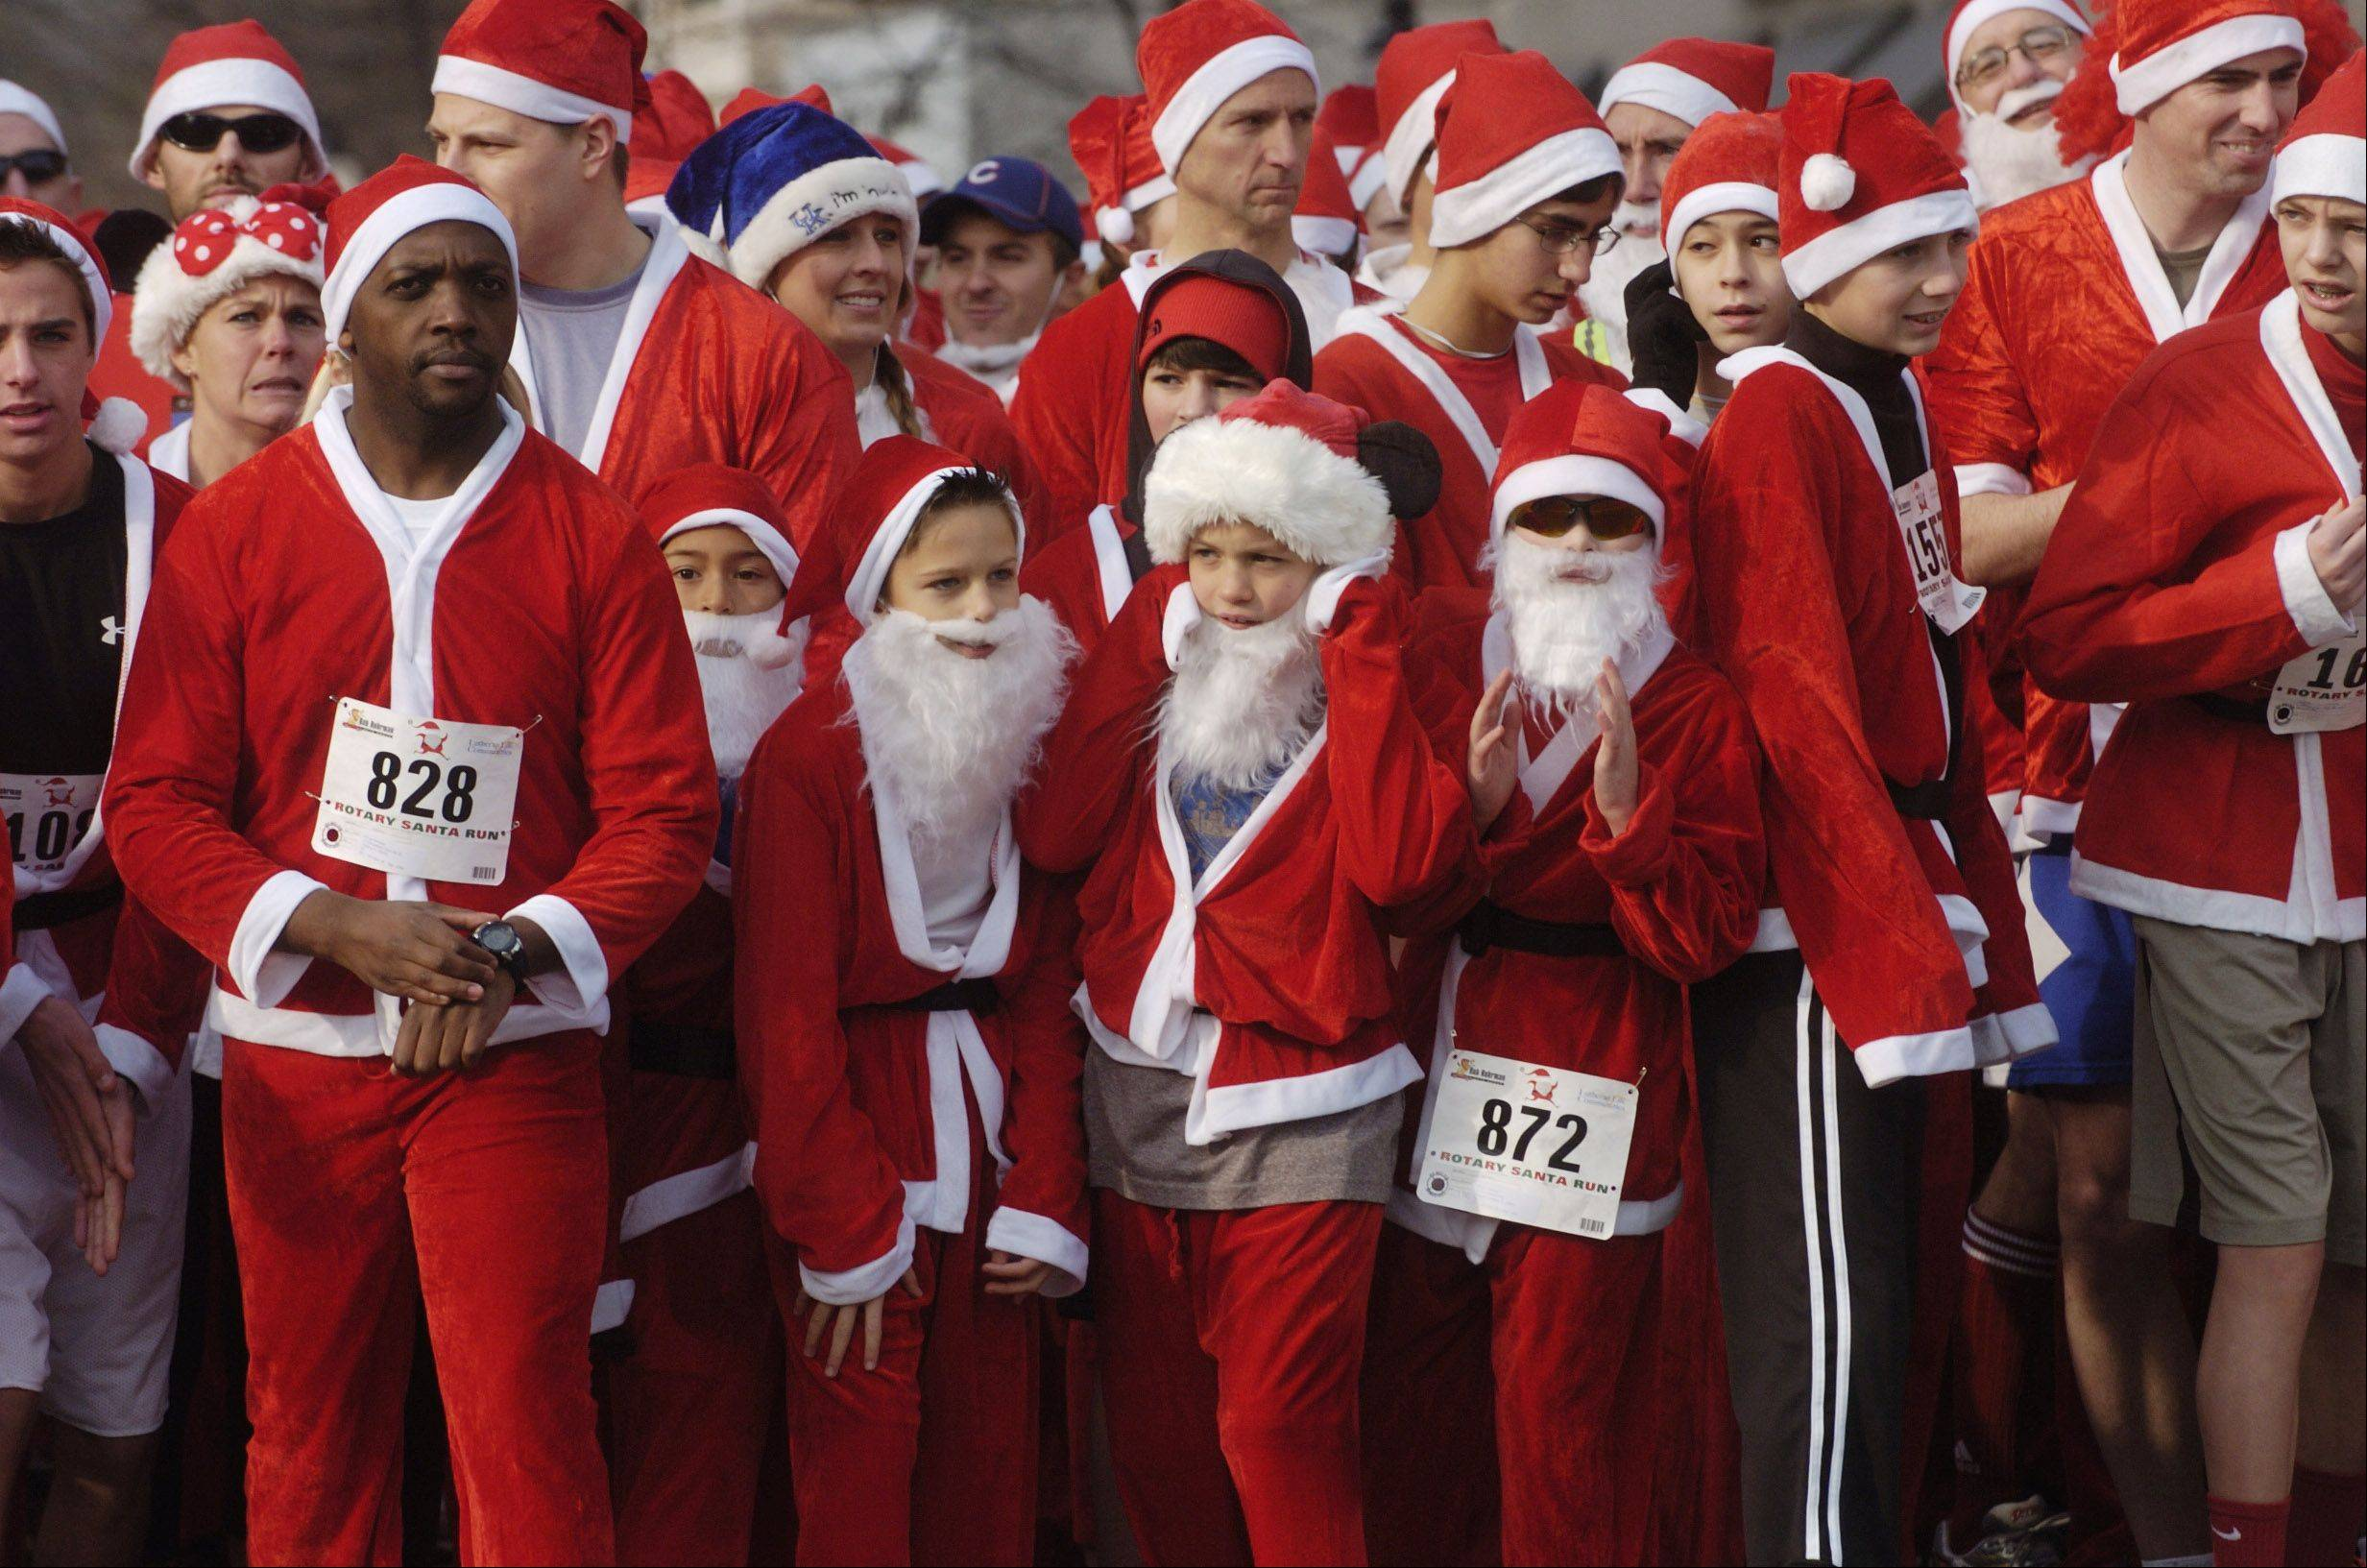 Runners wait for the sound of the starter's pistol during Saturday's 5k Santa Run in Arlington Heights.